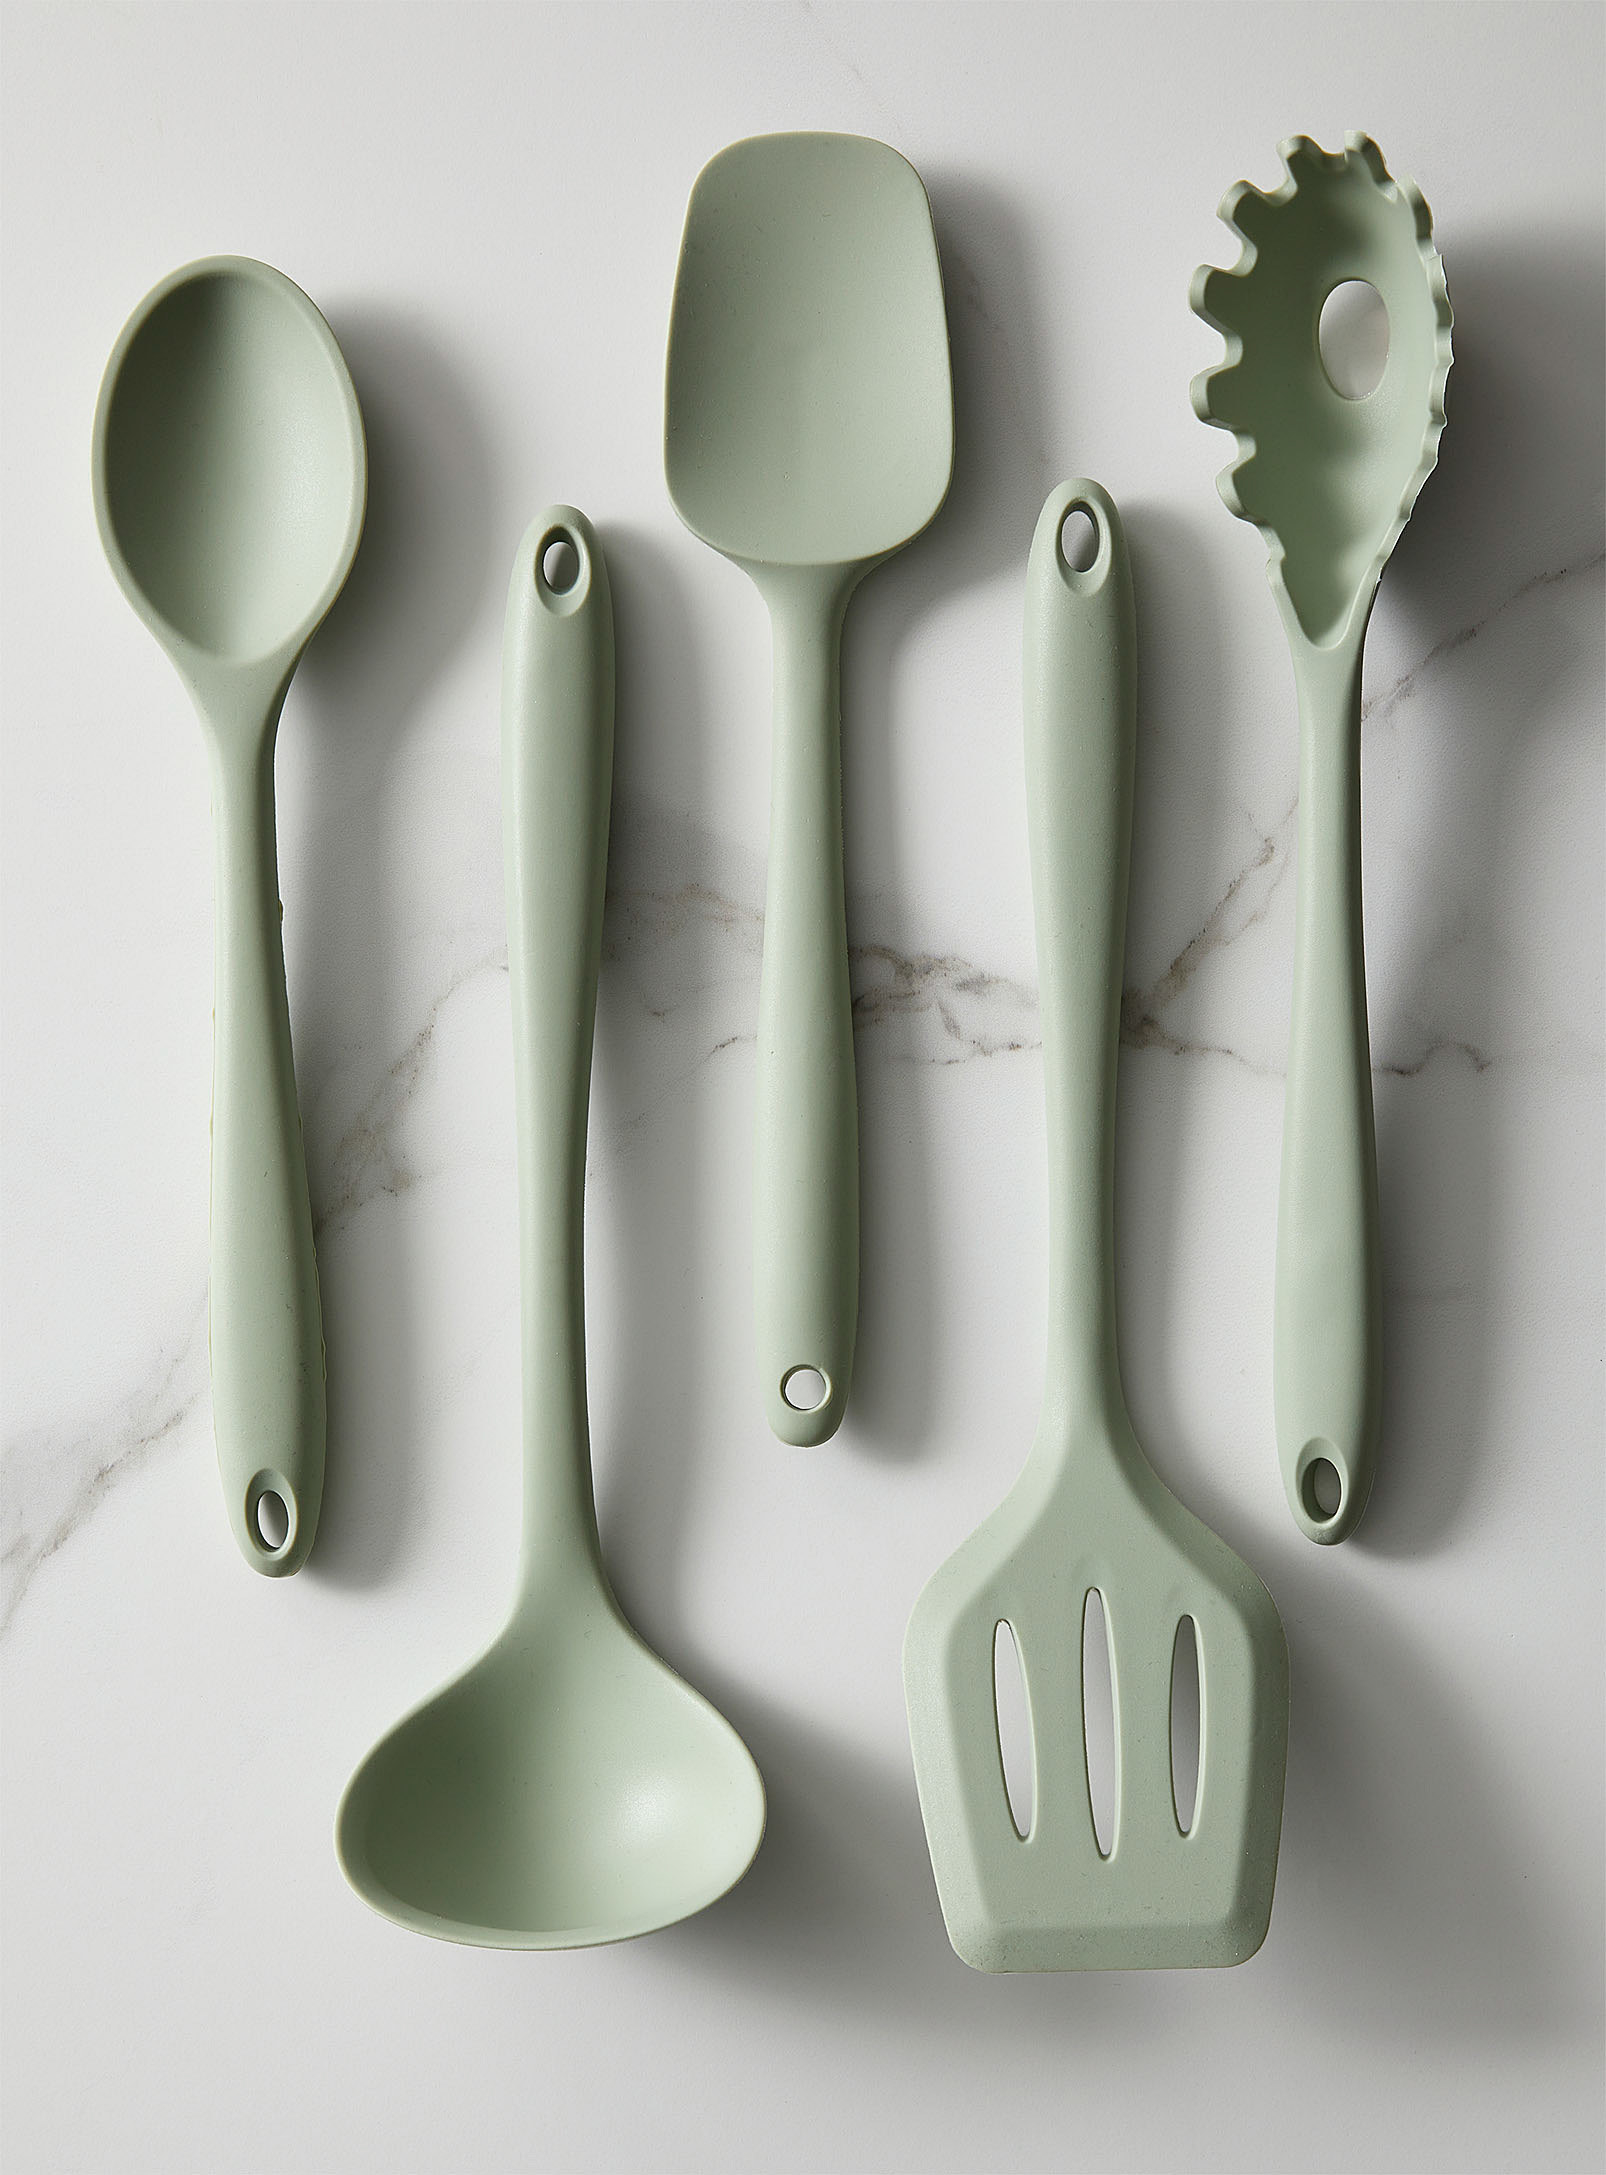 A flatlay of silicone kitchen utensils